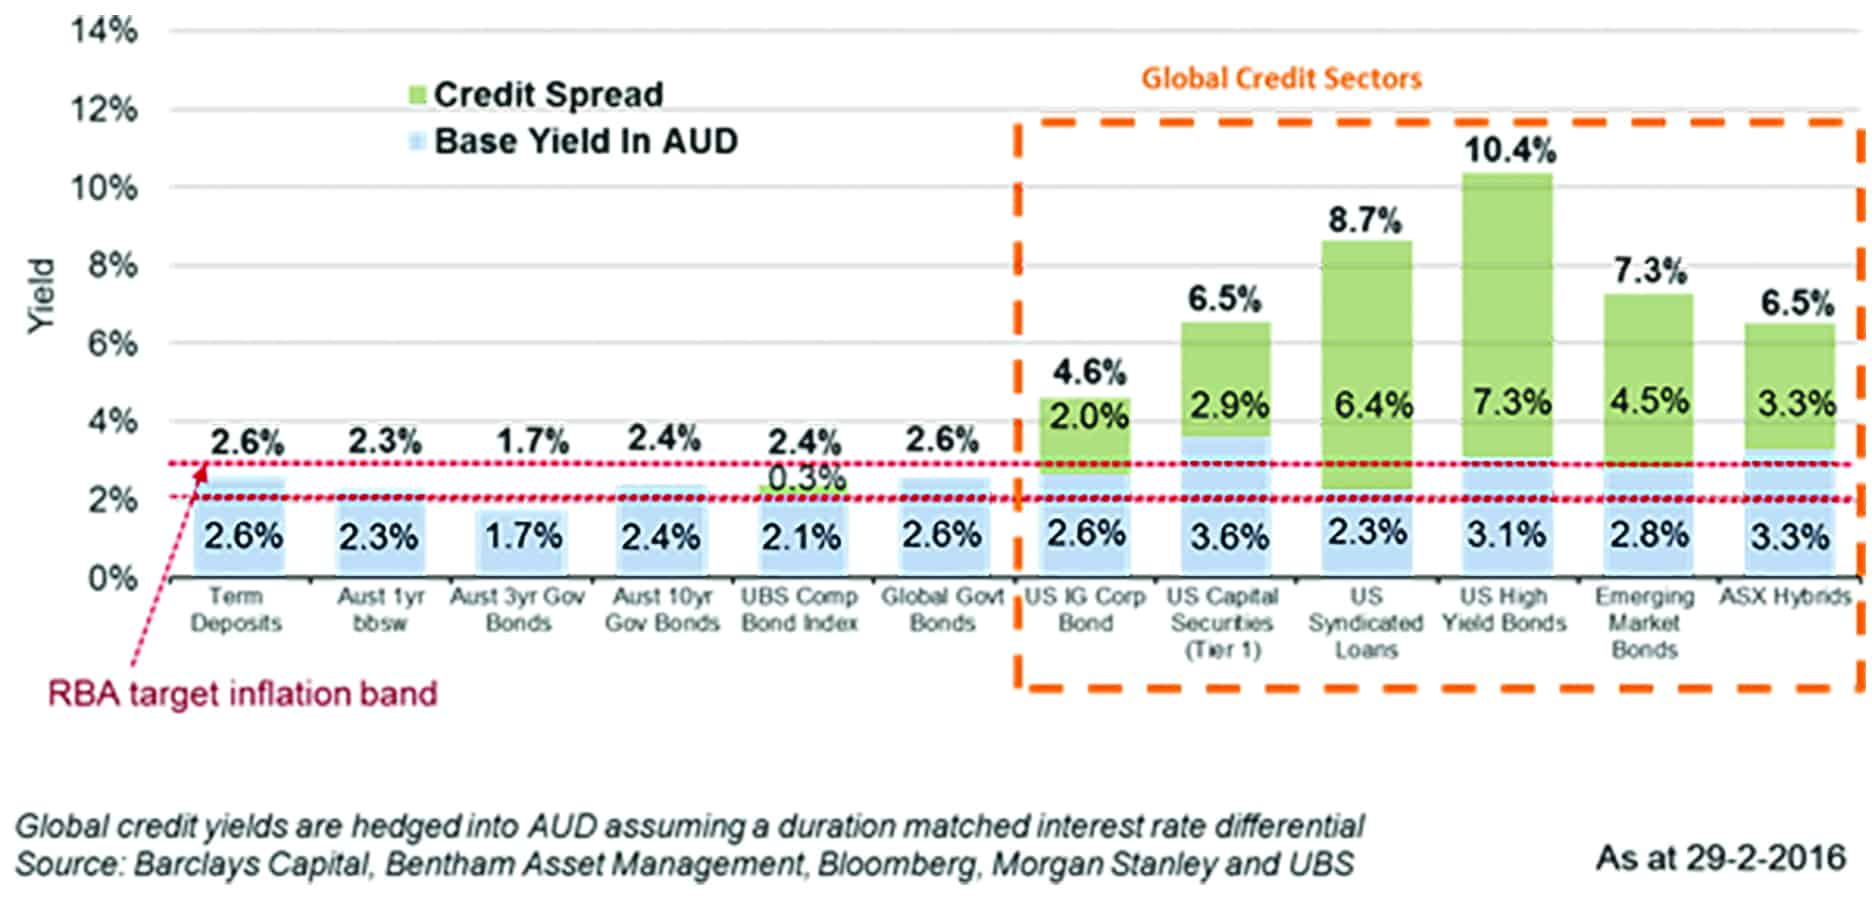 Current Investment Yields (Cash and Fixed Interest Yields are Much Lower Than Past Returns For These Sectors)